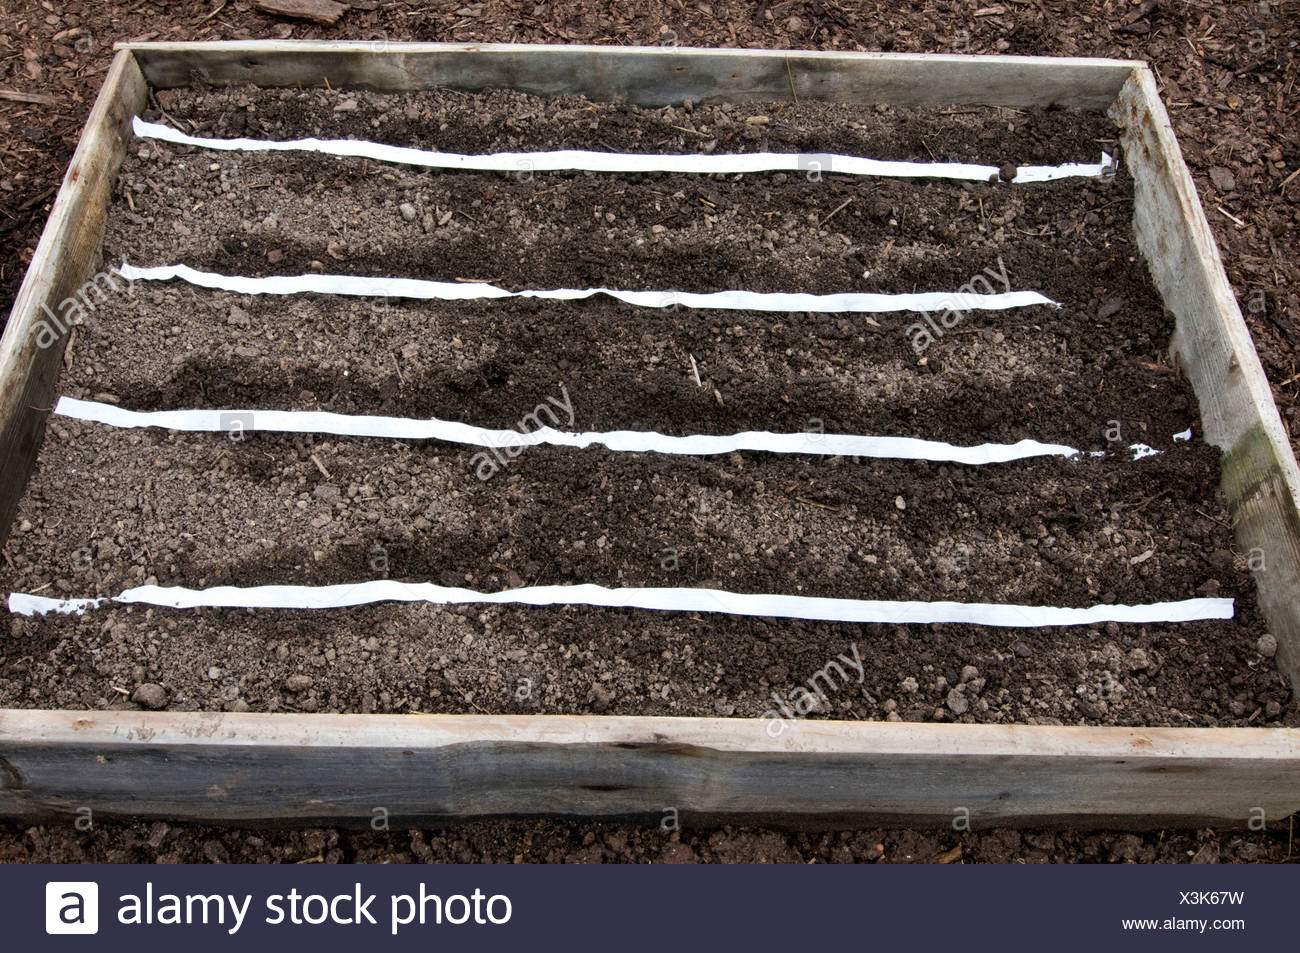 Seed strip - Stock Image